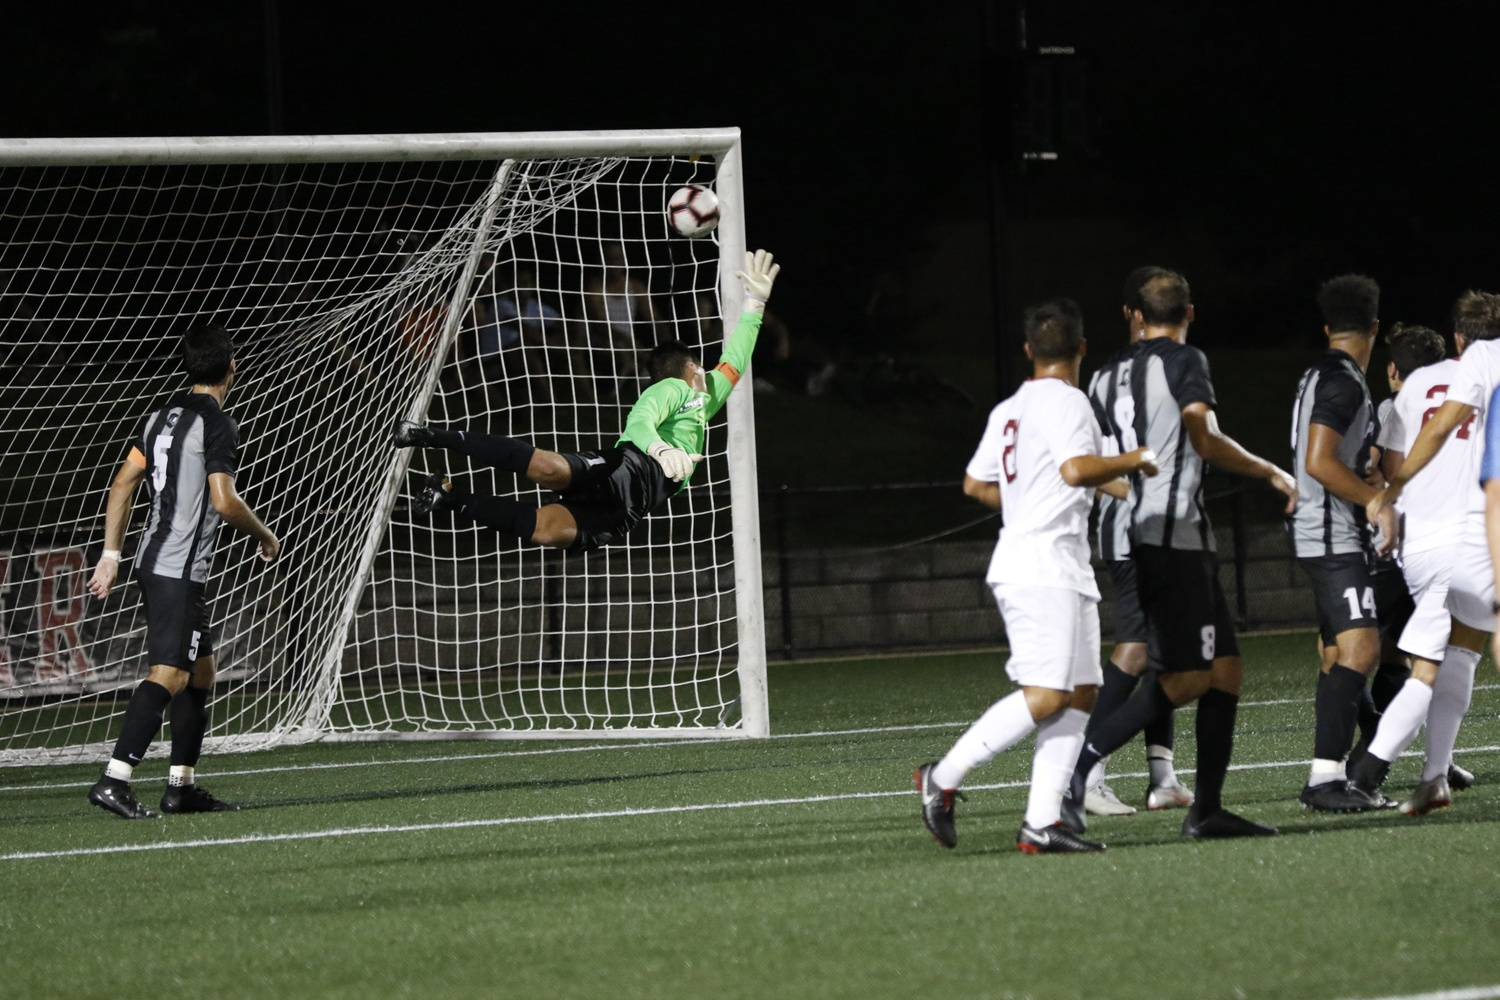 Harvard senior Jack Miler eked a header past Providence keeper Colin Miller, which proved to be the deciding goal in Monday's victory.